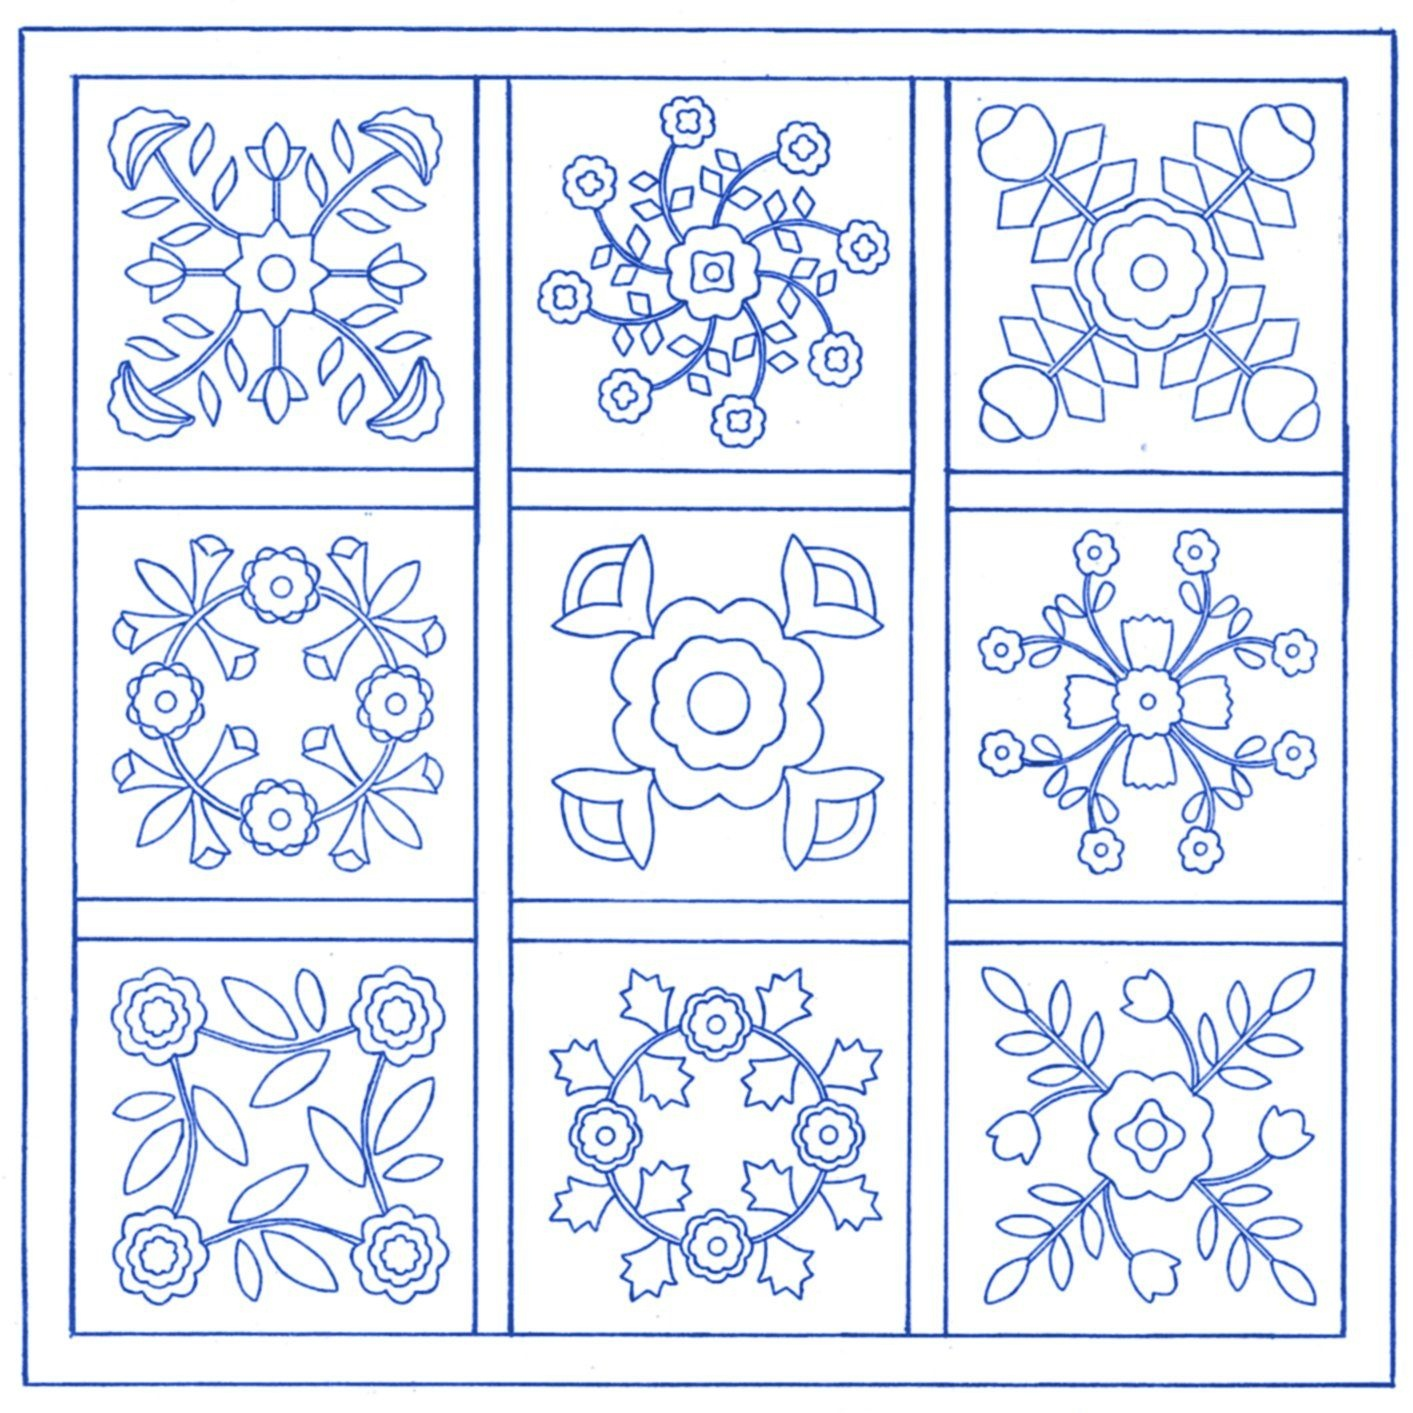 Free Applique Quilt Block Patterns | Traditional Applique Patterns - Free Printable Flower Applique Patterns